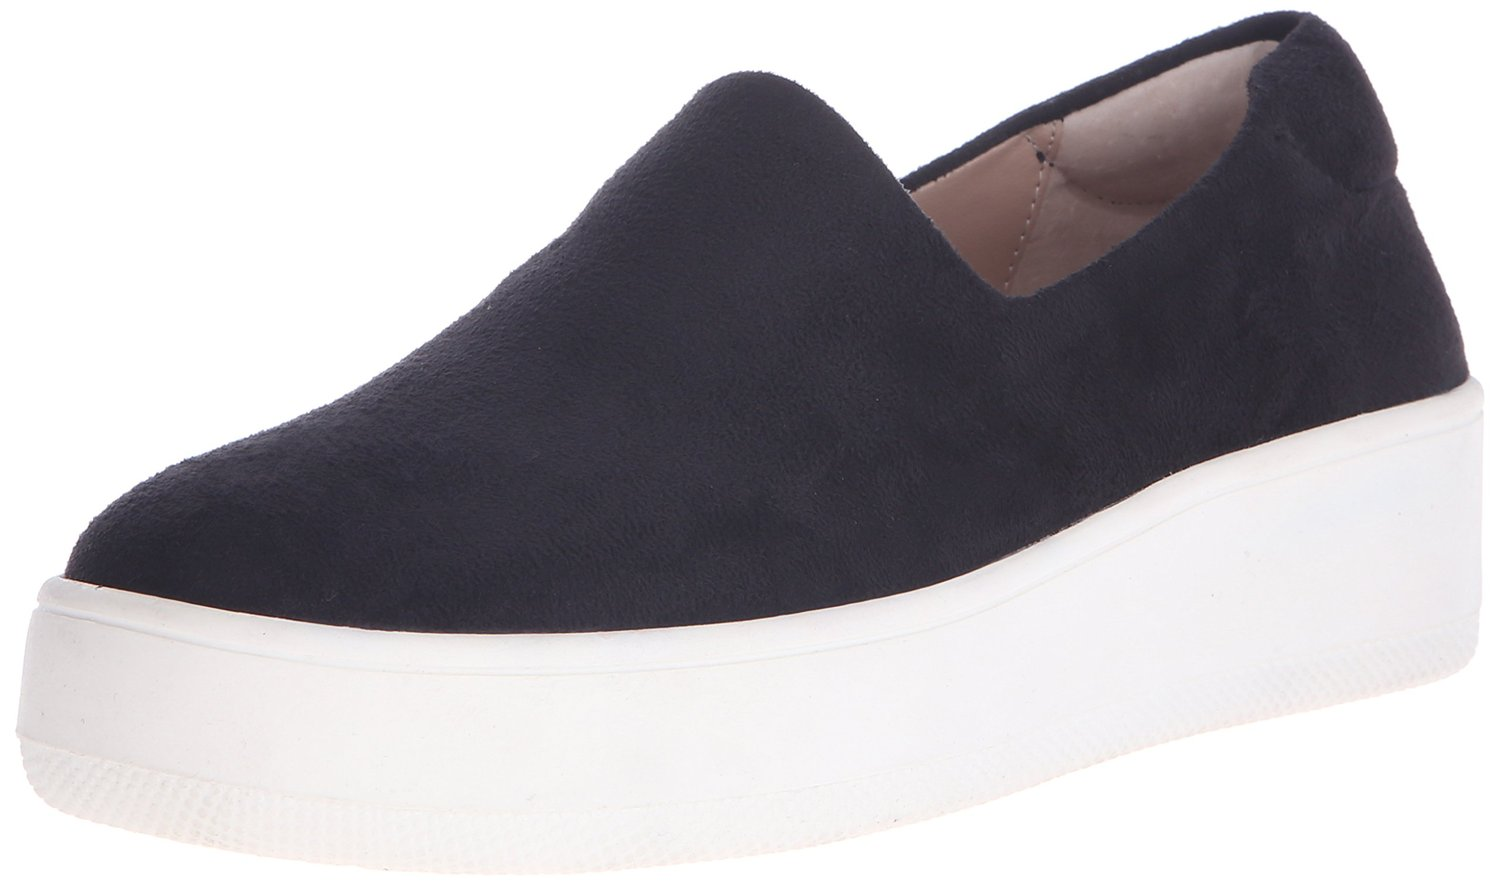 9419e687596 STEVEN by Steve Madden Womens Hilda Low Top Slip On Fashion